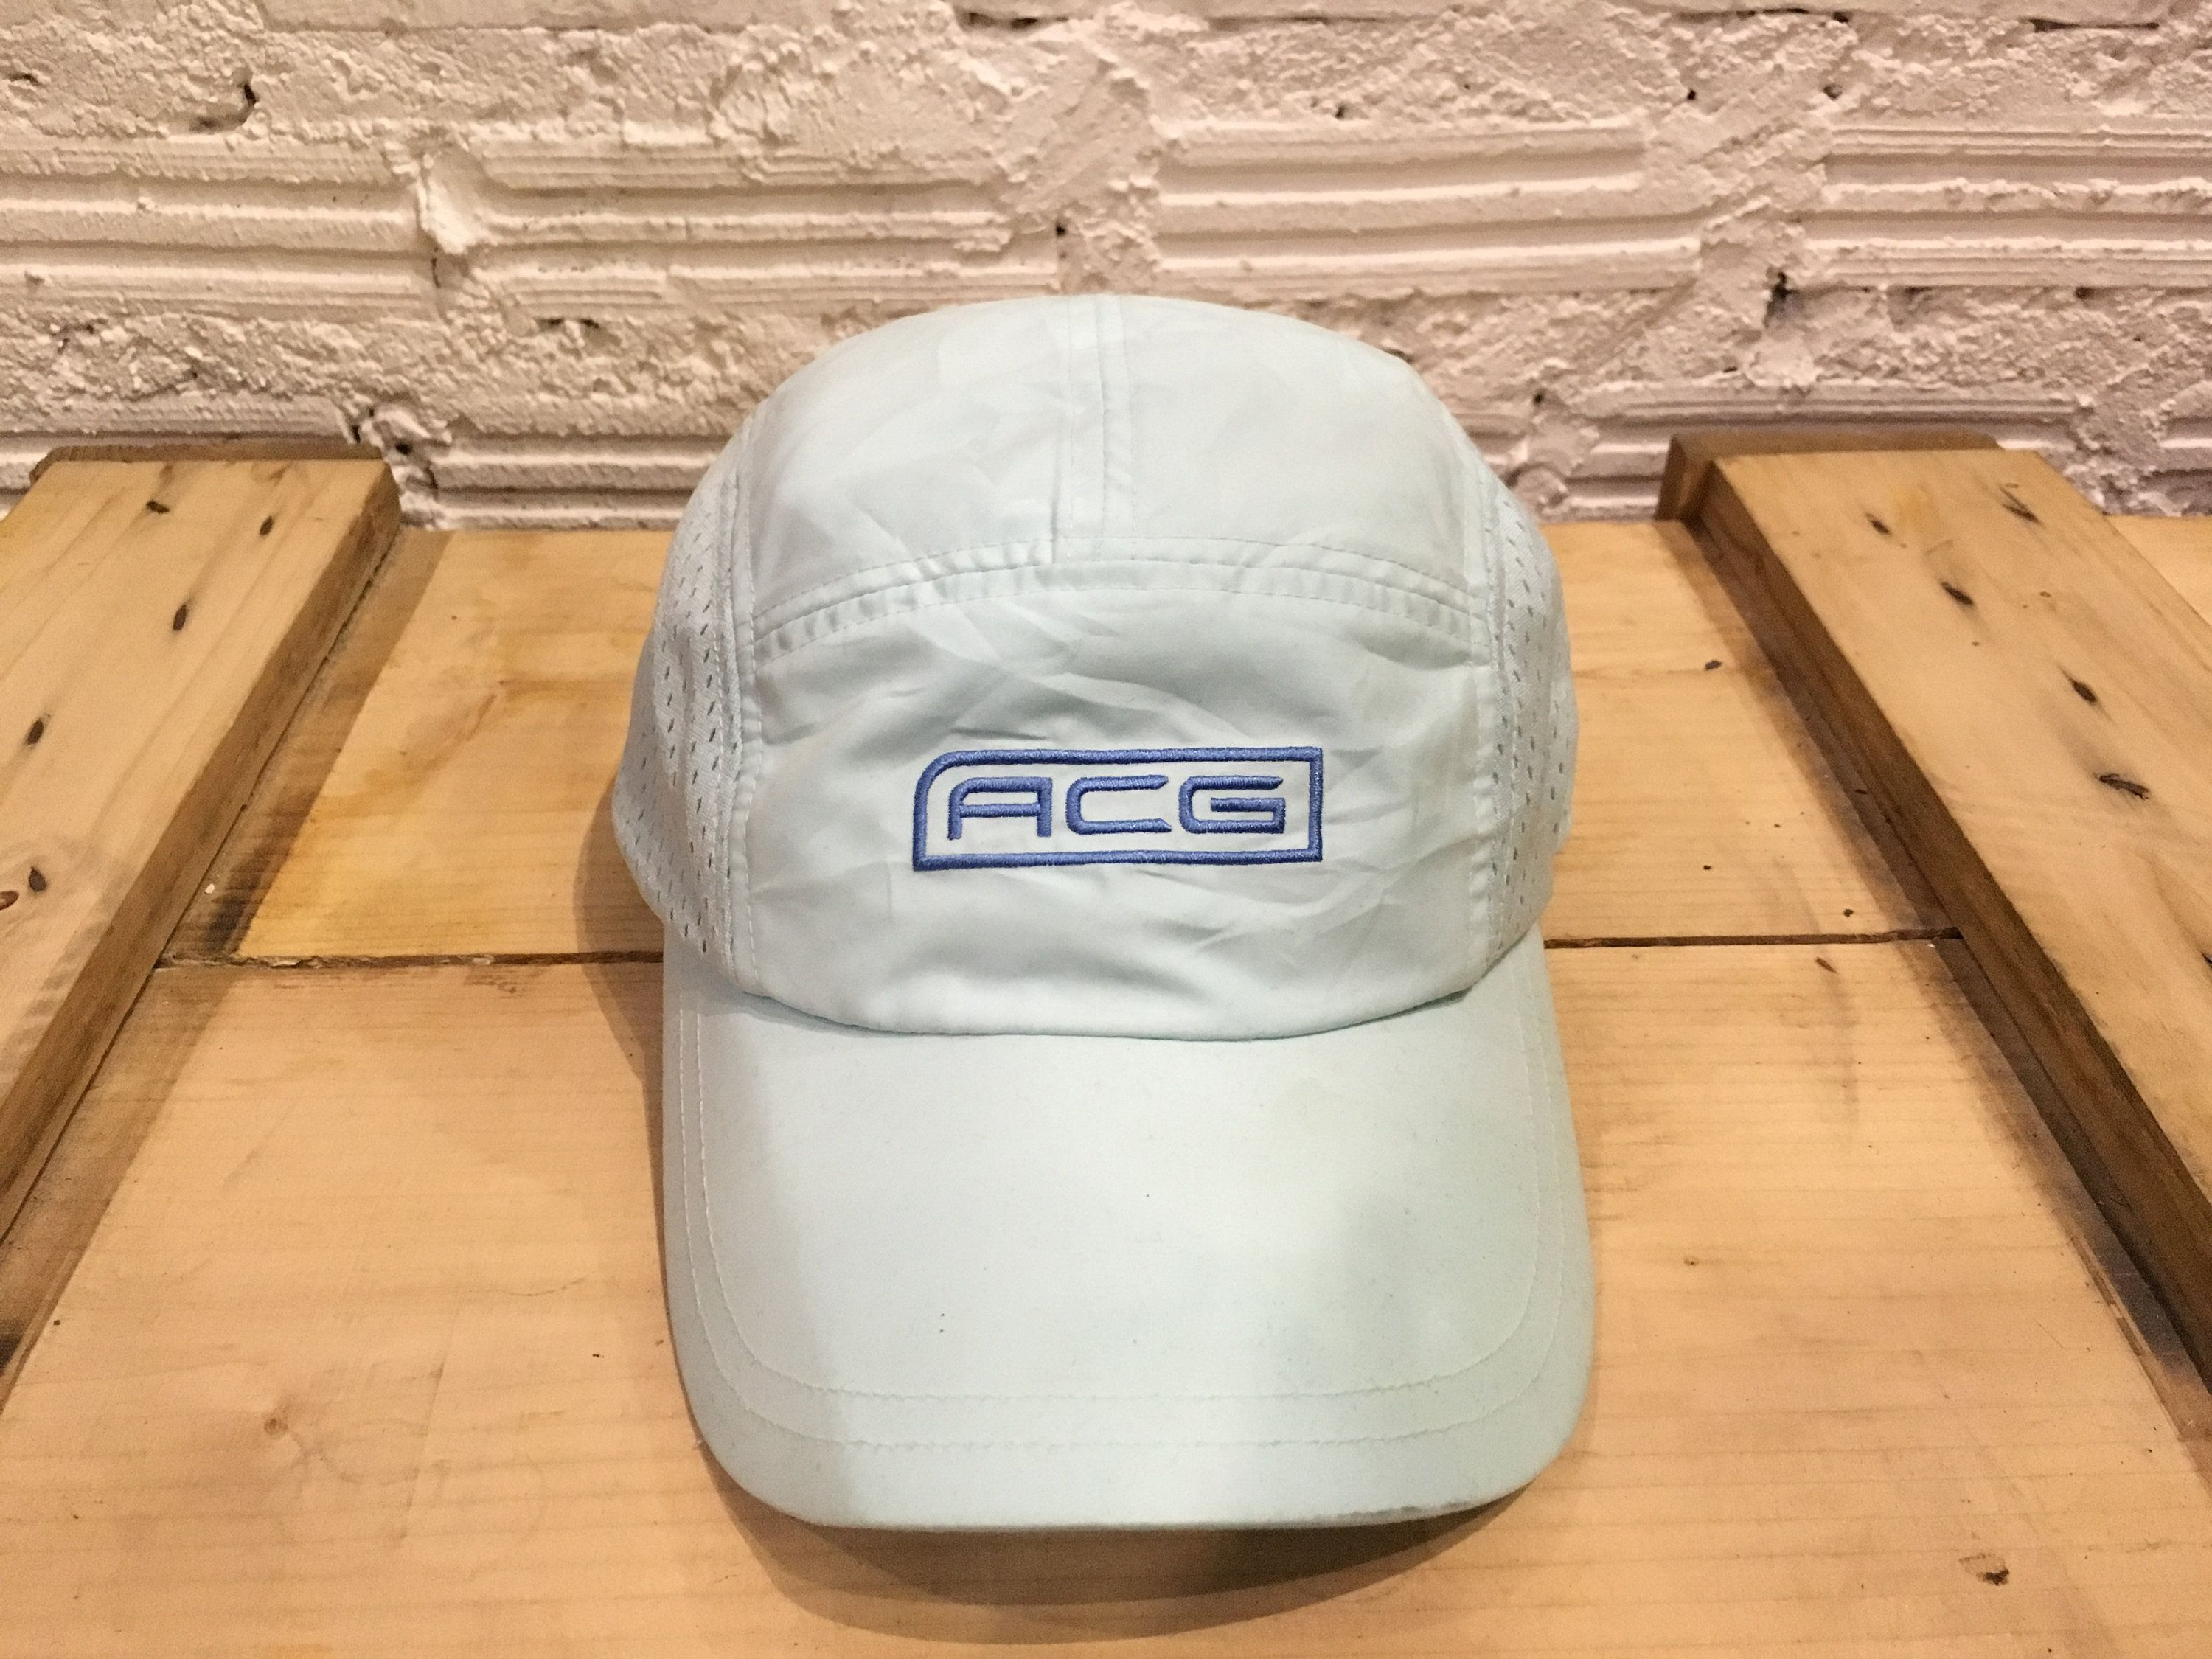 f78083dda07 Vintage Nike ACG camp cap mesh nylon hat ACG box logo Neon light Blue Good  condition Nike all conditions gear by AlivevintageShop on Etsy